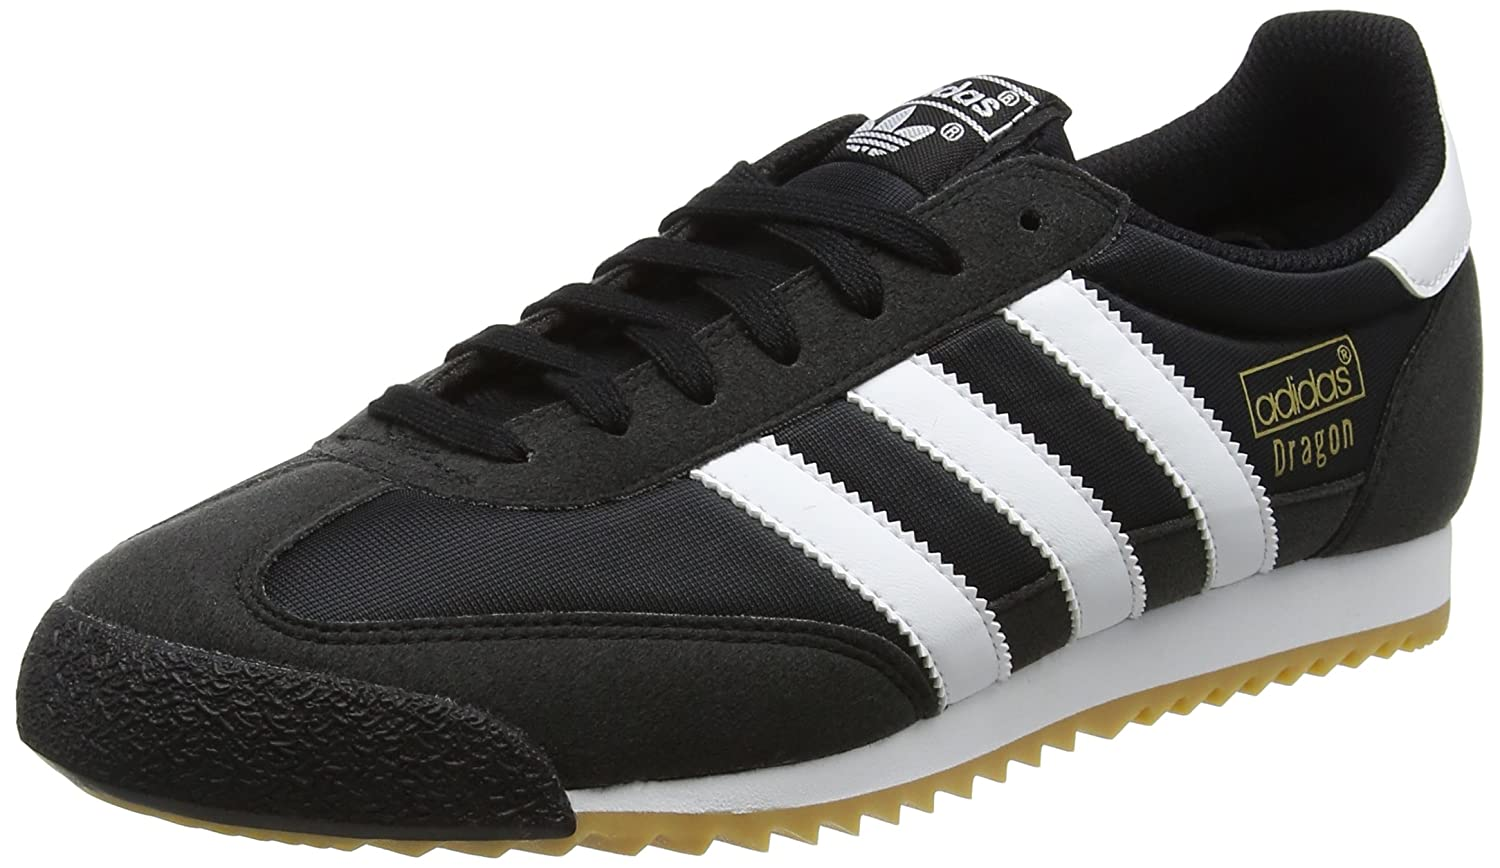 adidas Dragon OG, Baskets Homme, Noir (Core Black/Footwear White/Gum 0), 40 EU